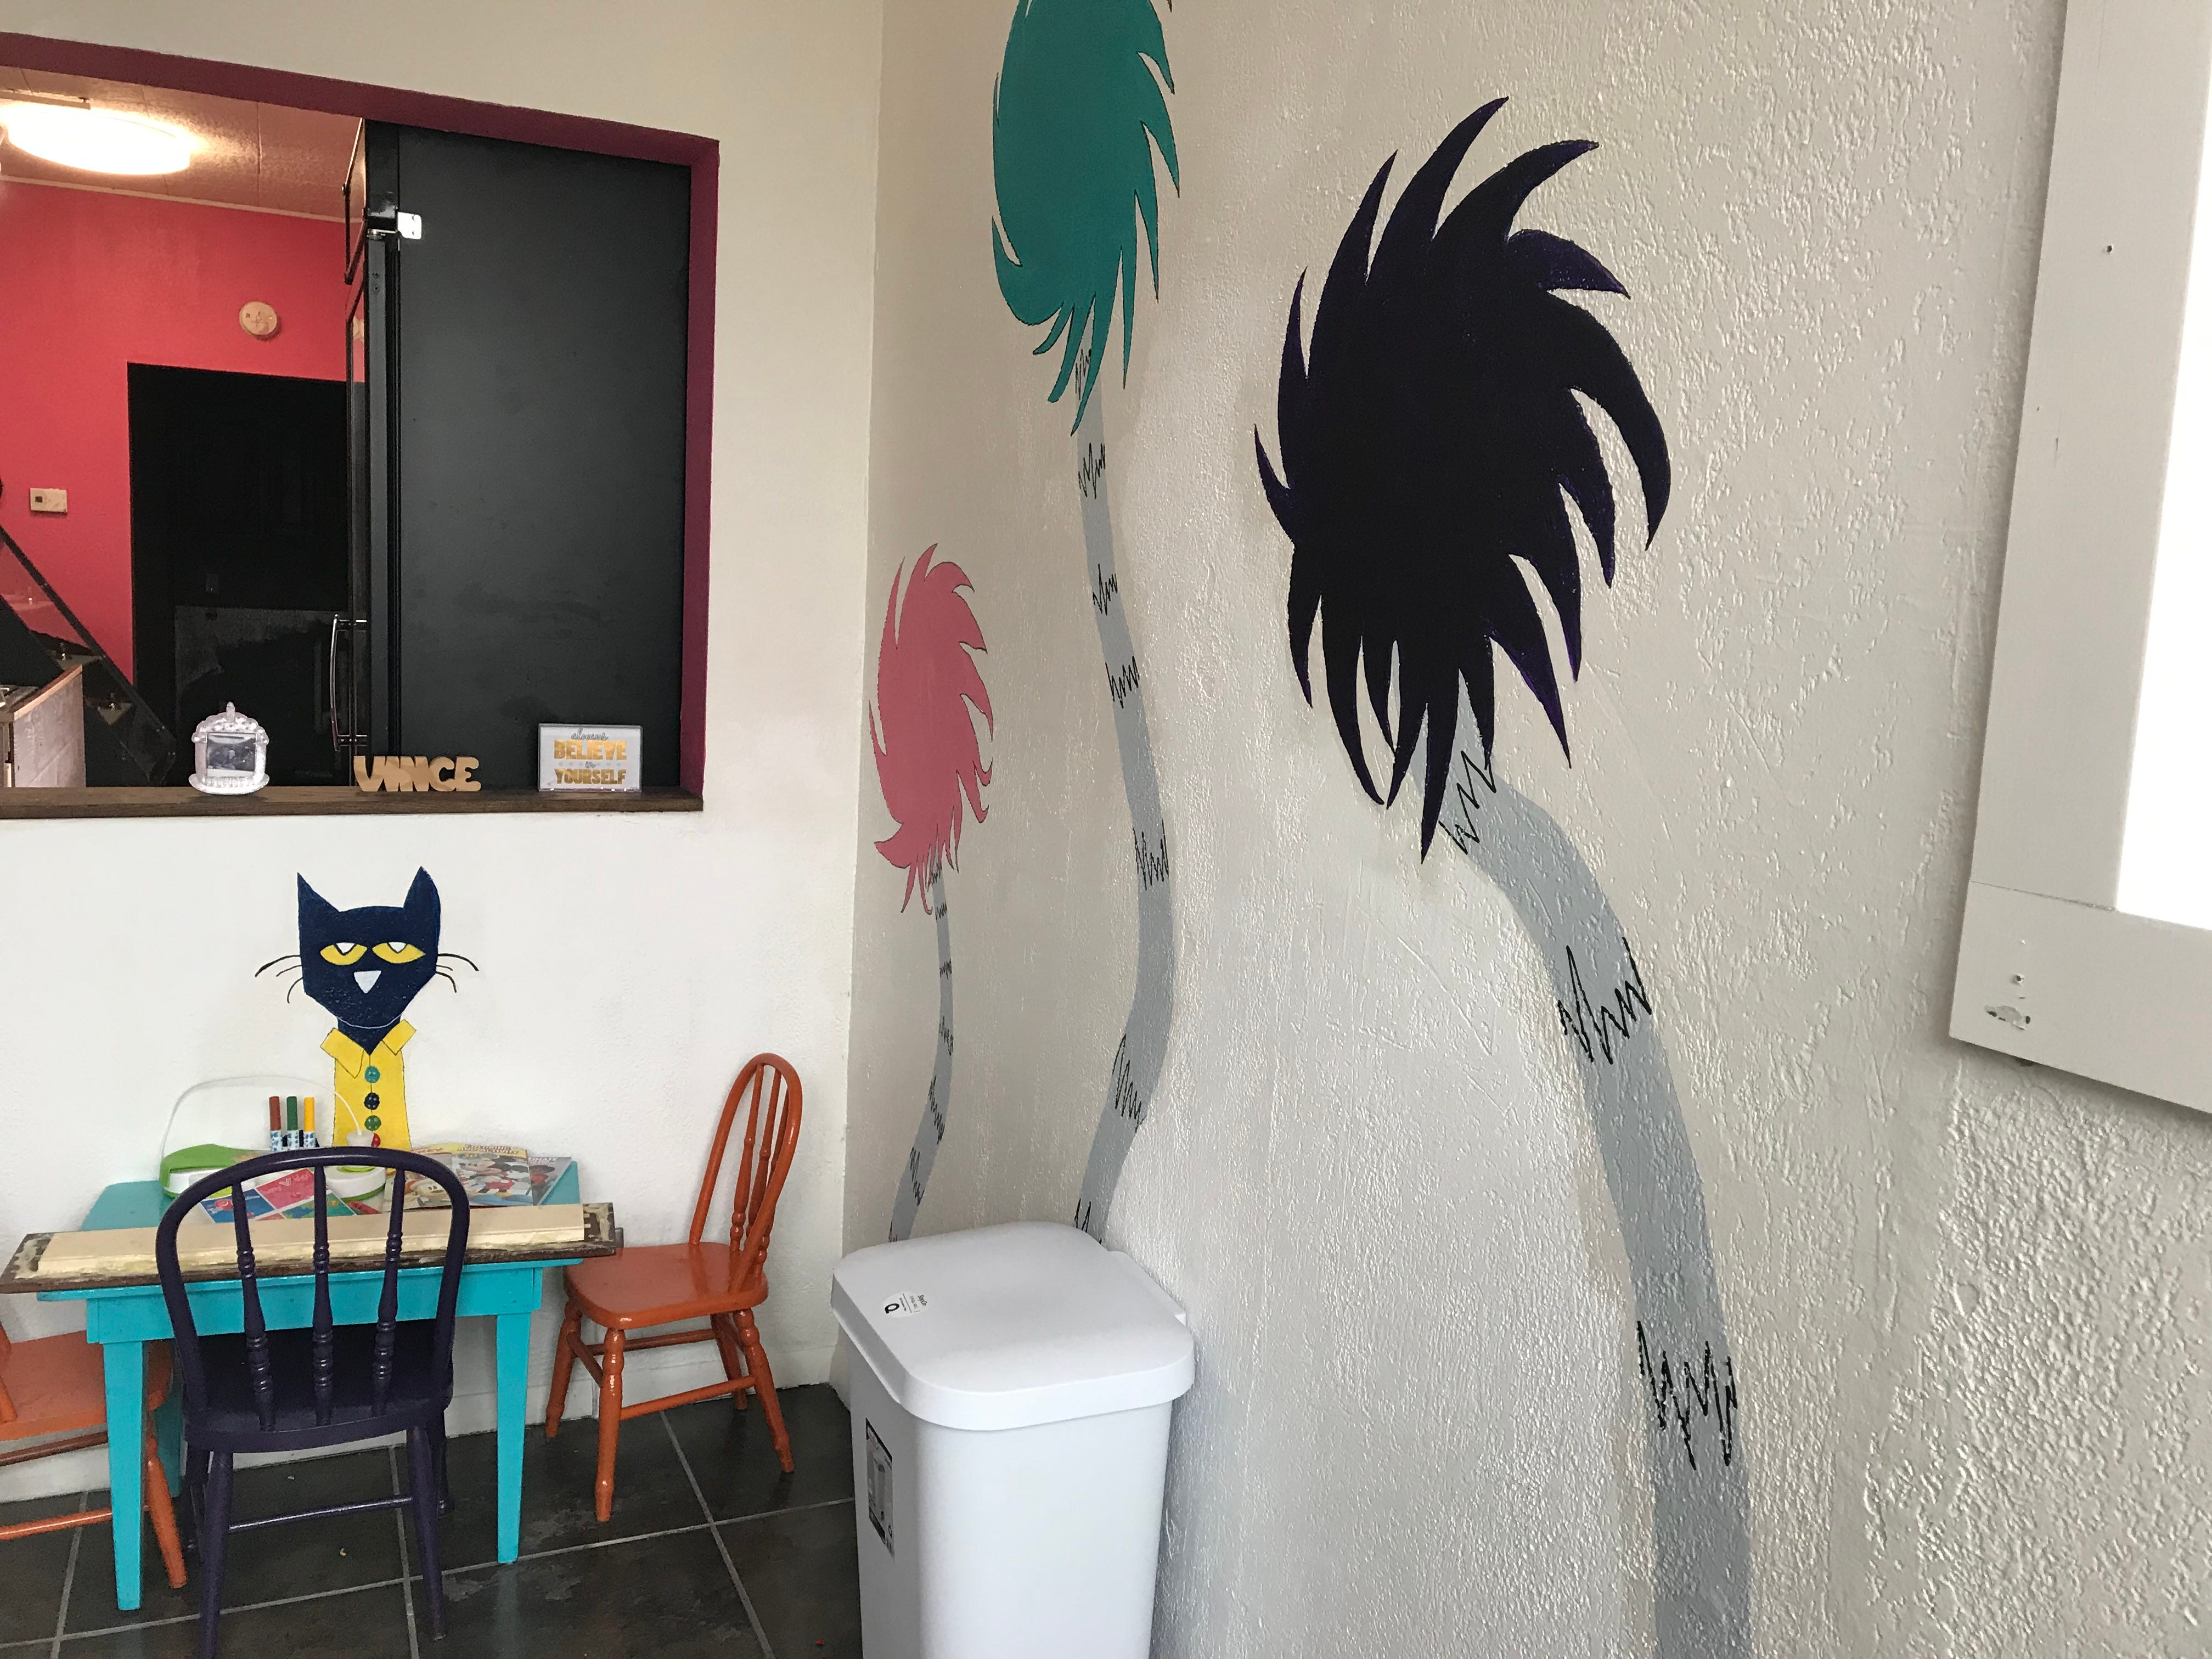 Trees and a cat are painted on the walls by a children's table inside The Sweet Spot in Wisconsin Rapids.